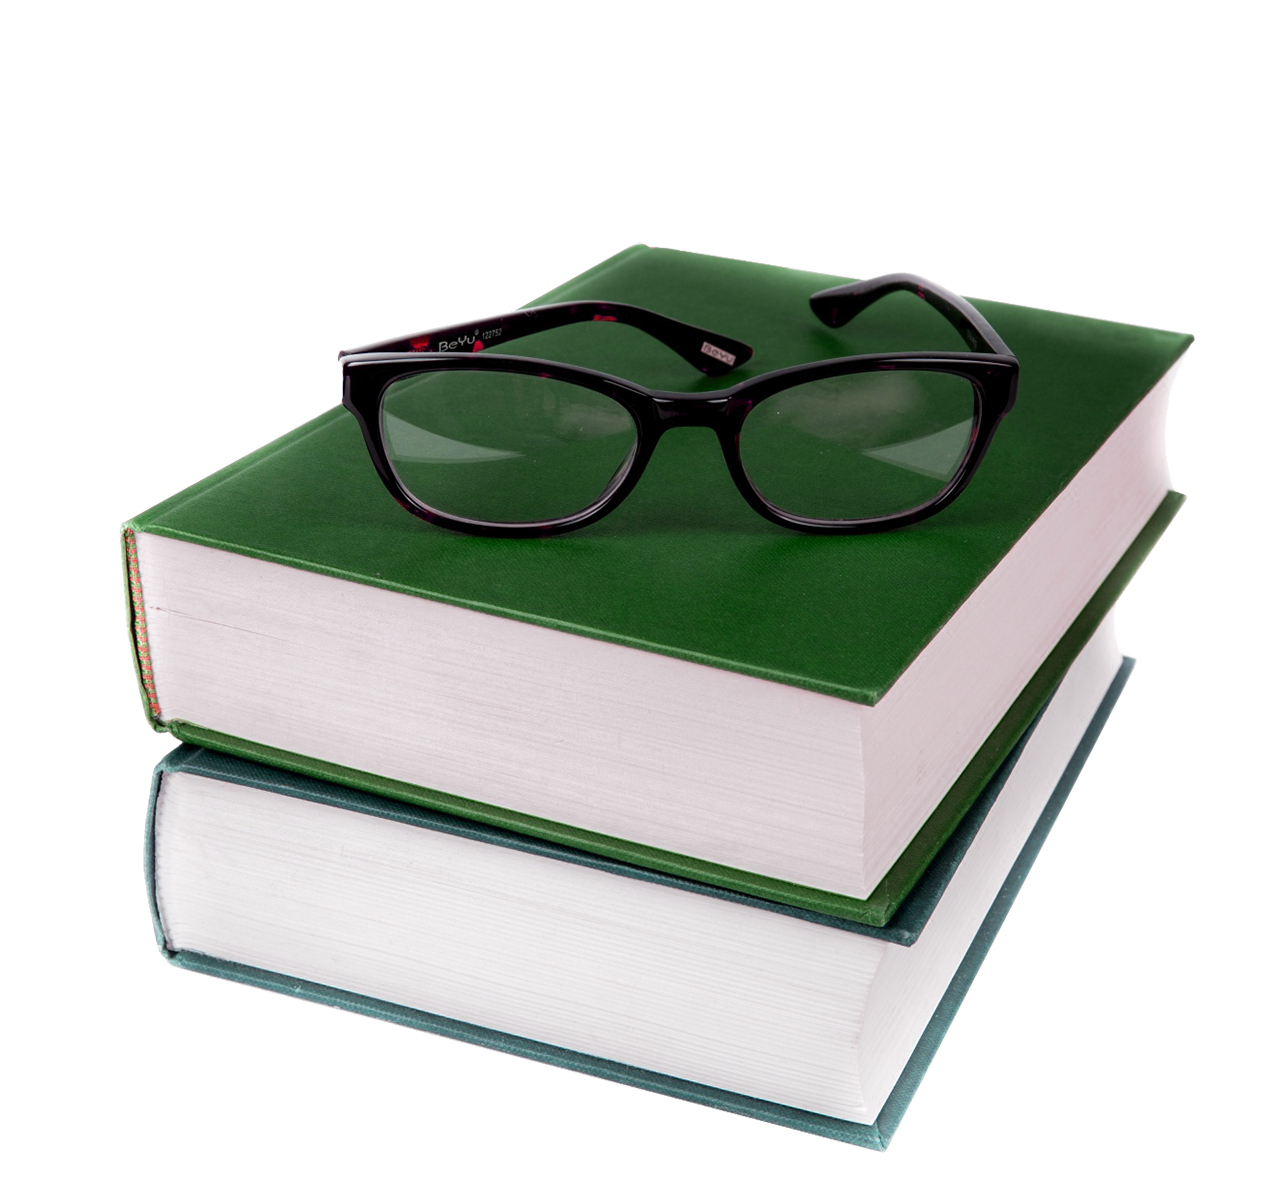 green books and glasses